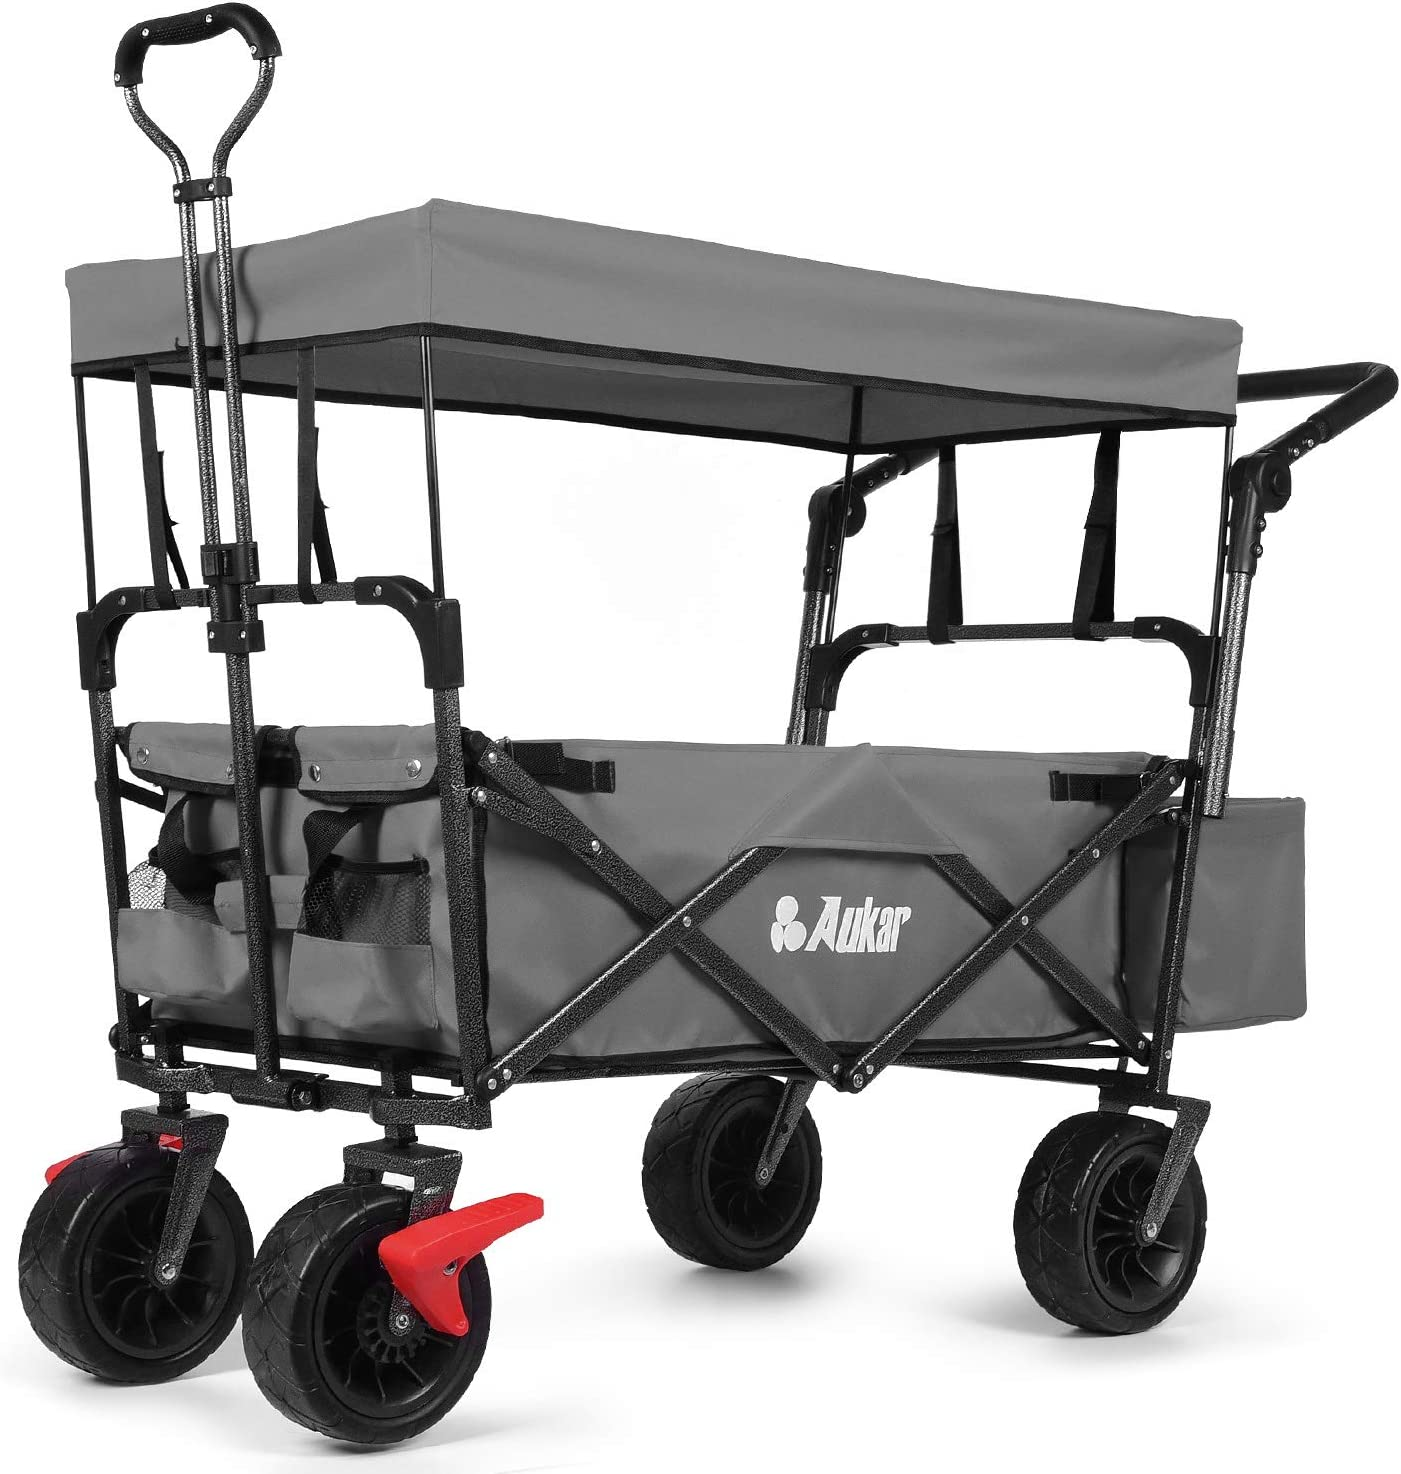 AUKAR Heavy Duty Collapsible Folding Cheap Utility Garde Outdoor Wagon Reservation